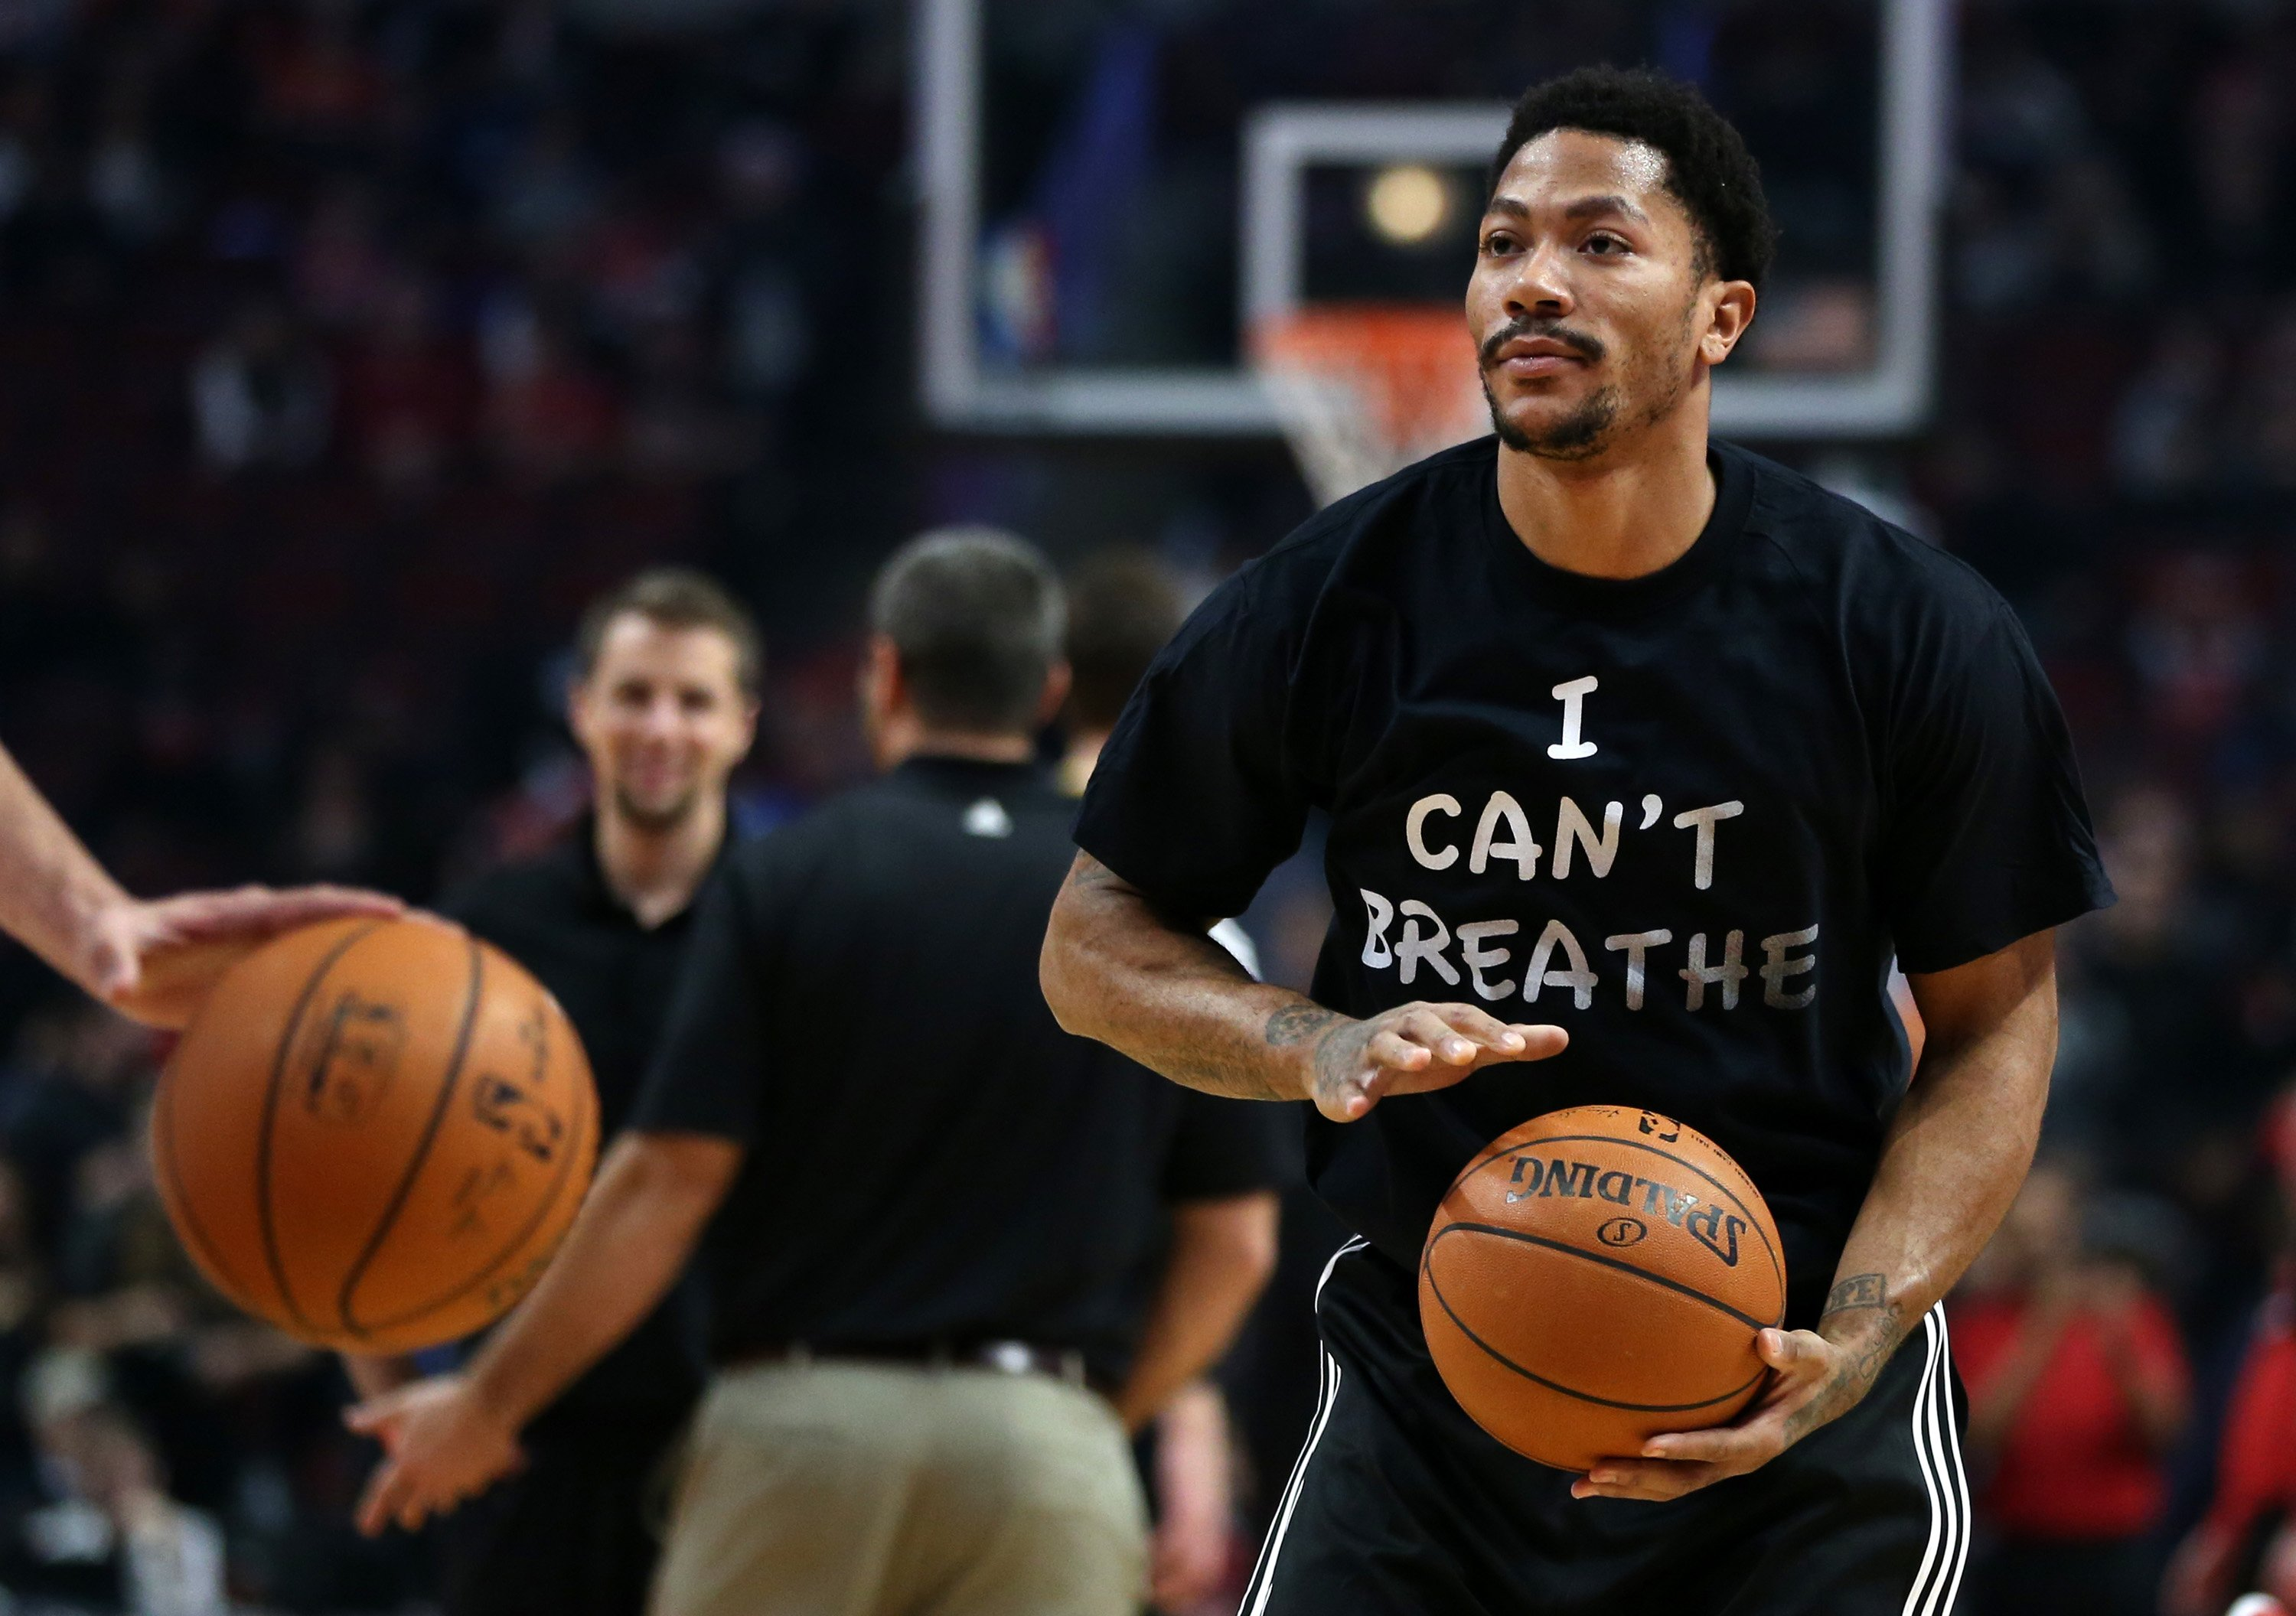 Chicago Bulls guard Derrick Rose wears a shirt reading  I Can't Breath  while warming up for a game against the Golden State Warriors on Dec. 6, 2014 at the United Center in Chicago.